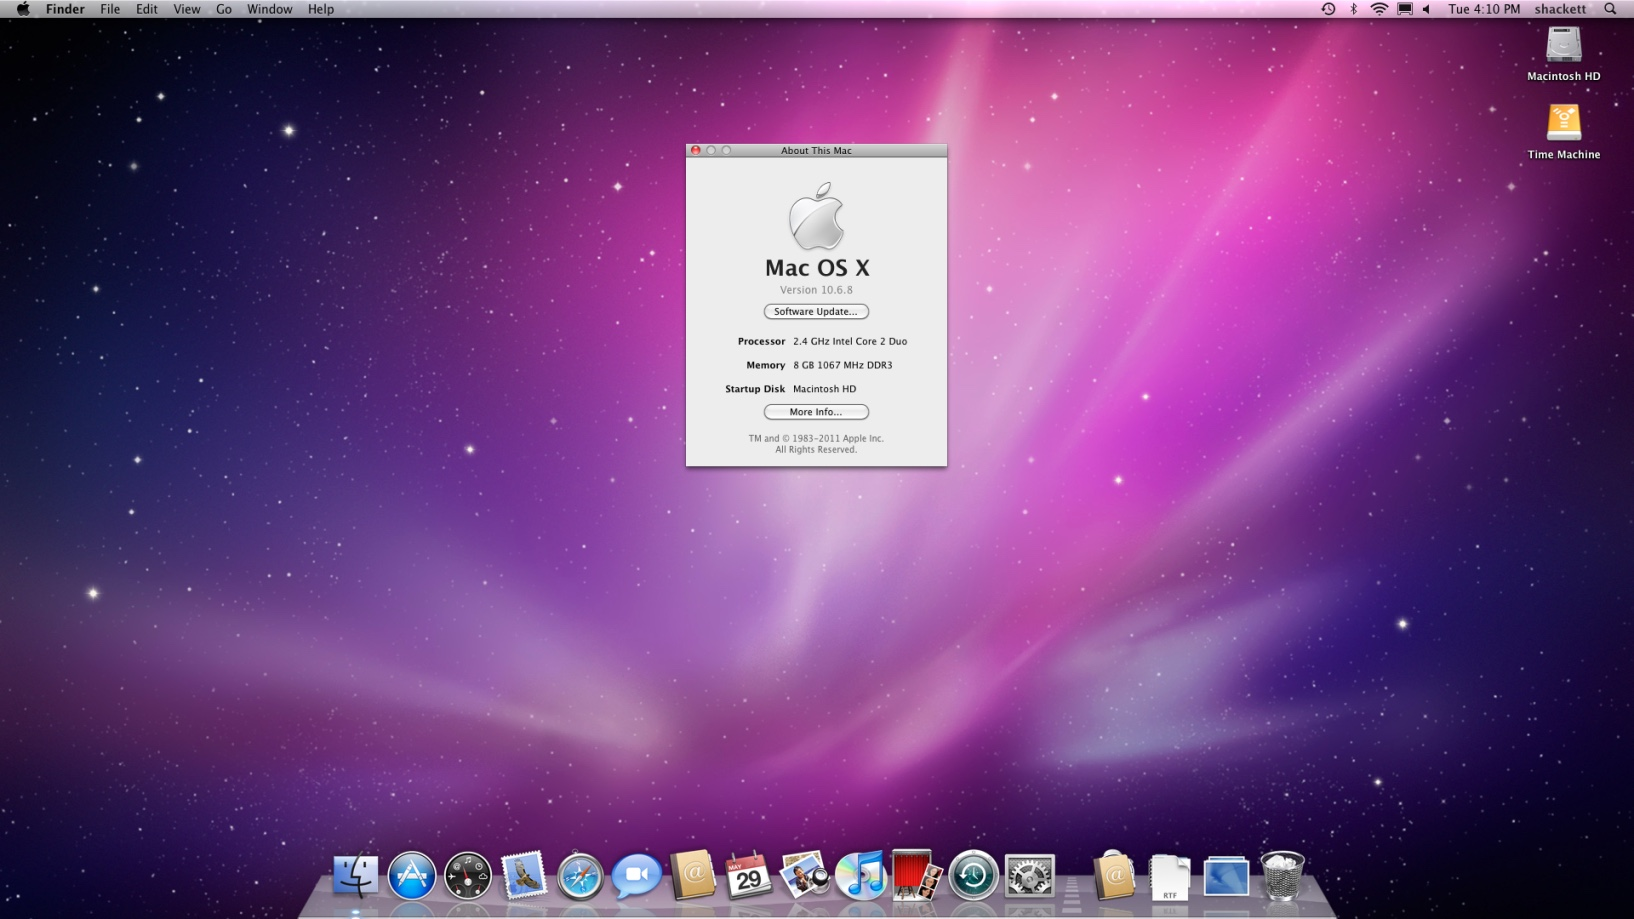 Mac OS X 10.6 Snow Leopard About dialog (2009)